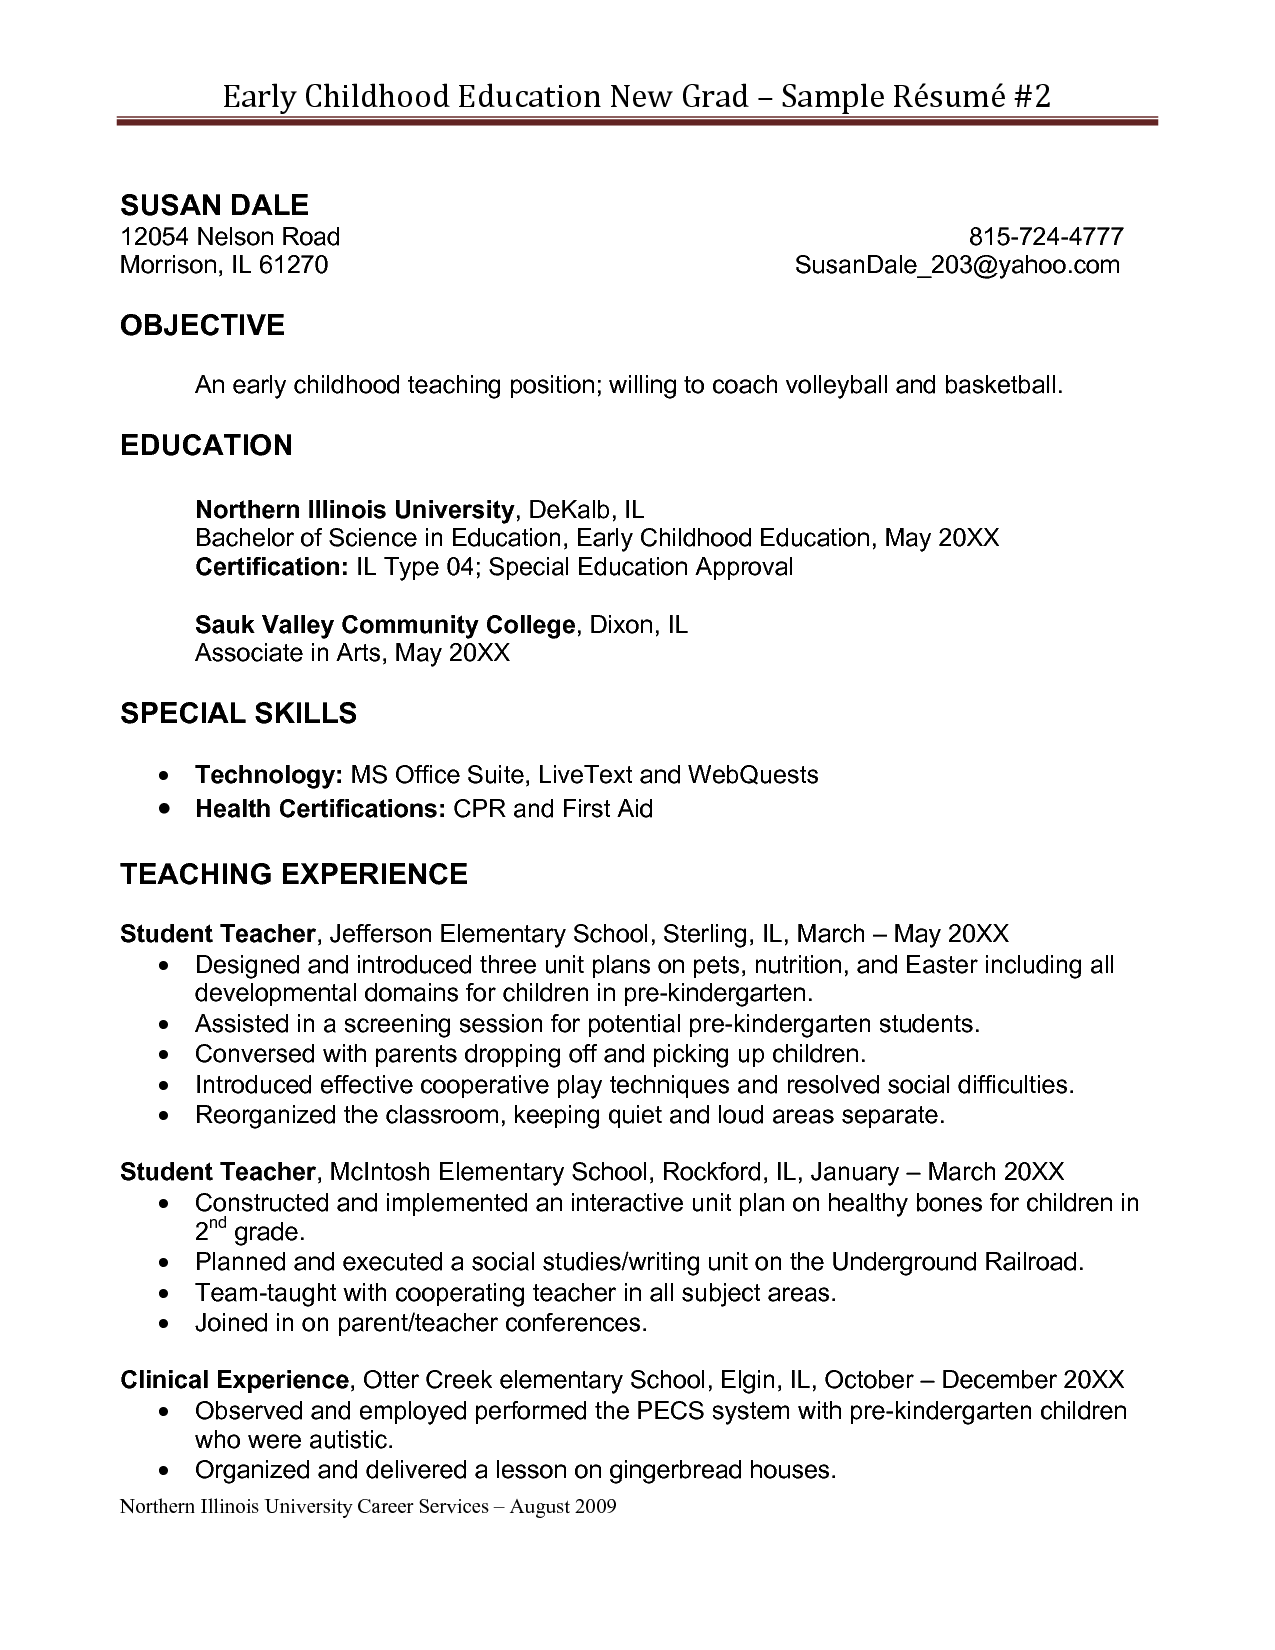 Resume Examples Objectives Early Childhood Education Resume Objective  Shebs  Pinterest